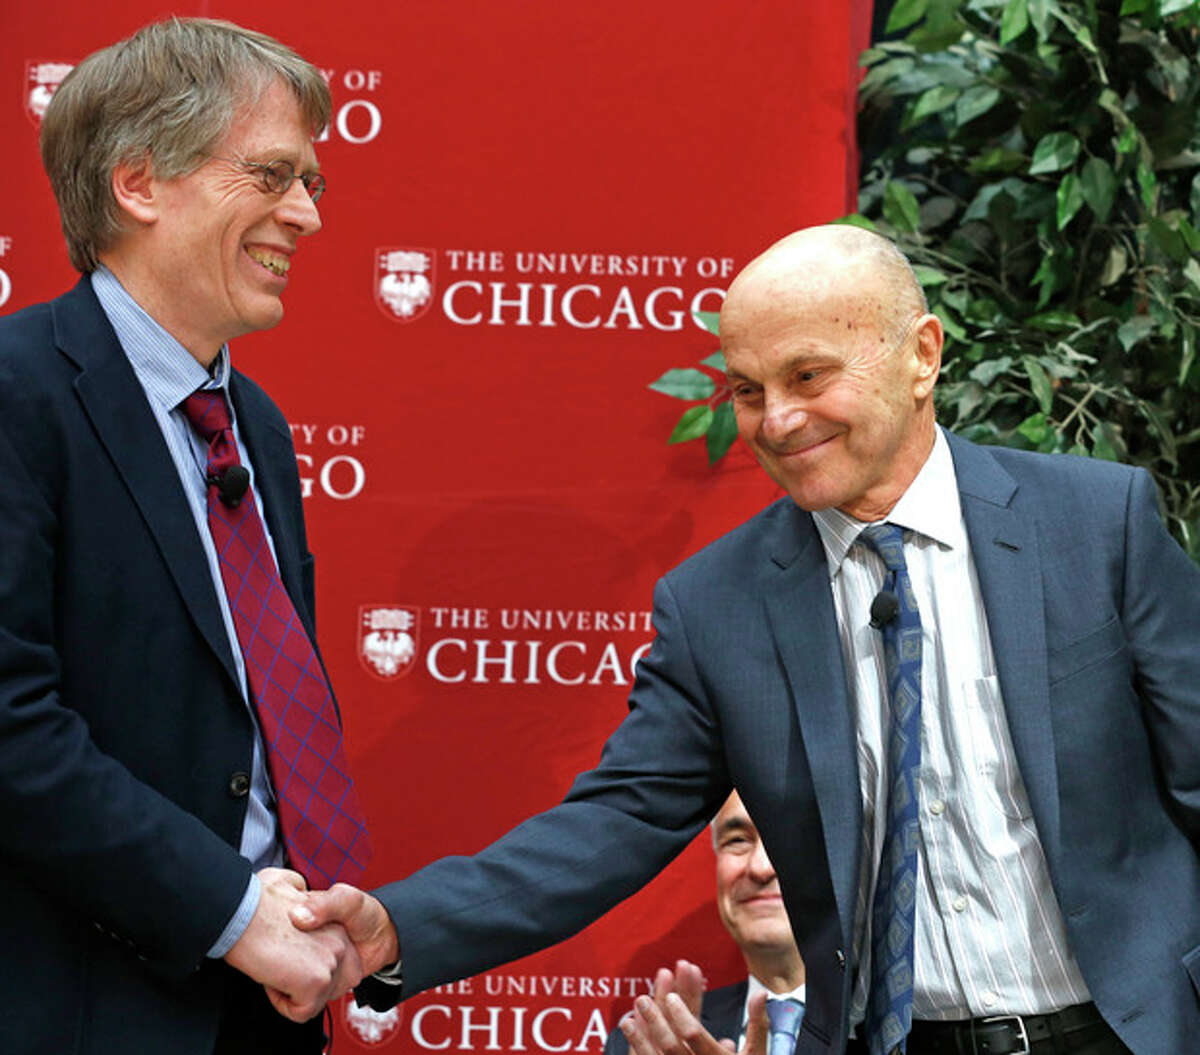 Nobel Prize winners Lars Peter Hansen, 60, left, and Eugene Fama, 74, of the University of Chicago, shake hands at a news conference Monday, Oct. 14, 2013, in Chicago after being named two of the three winners of the Nobel prize for economics. They share the prize with Robert Shiller, 67, of Yale University. (AP Photo/M. Spencer Green)